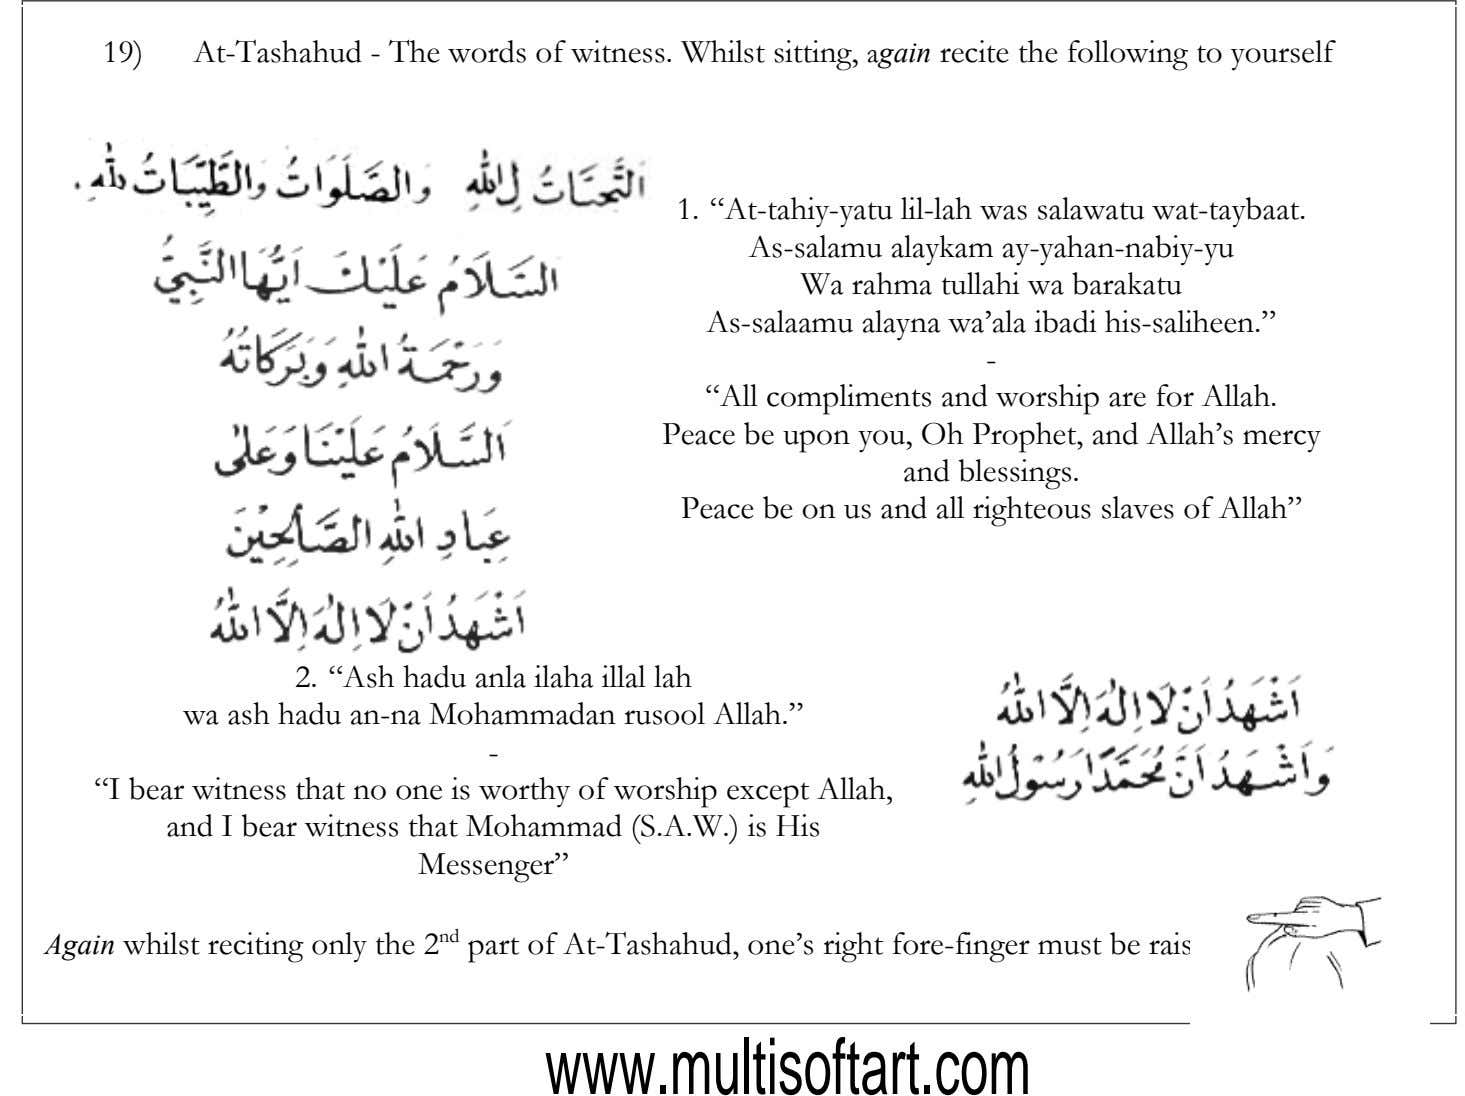 19) At-Tashahud - The words of witness. Whilst sitting, again recite the following to yourself 1.